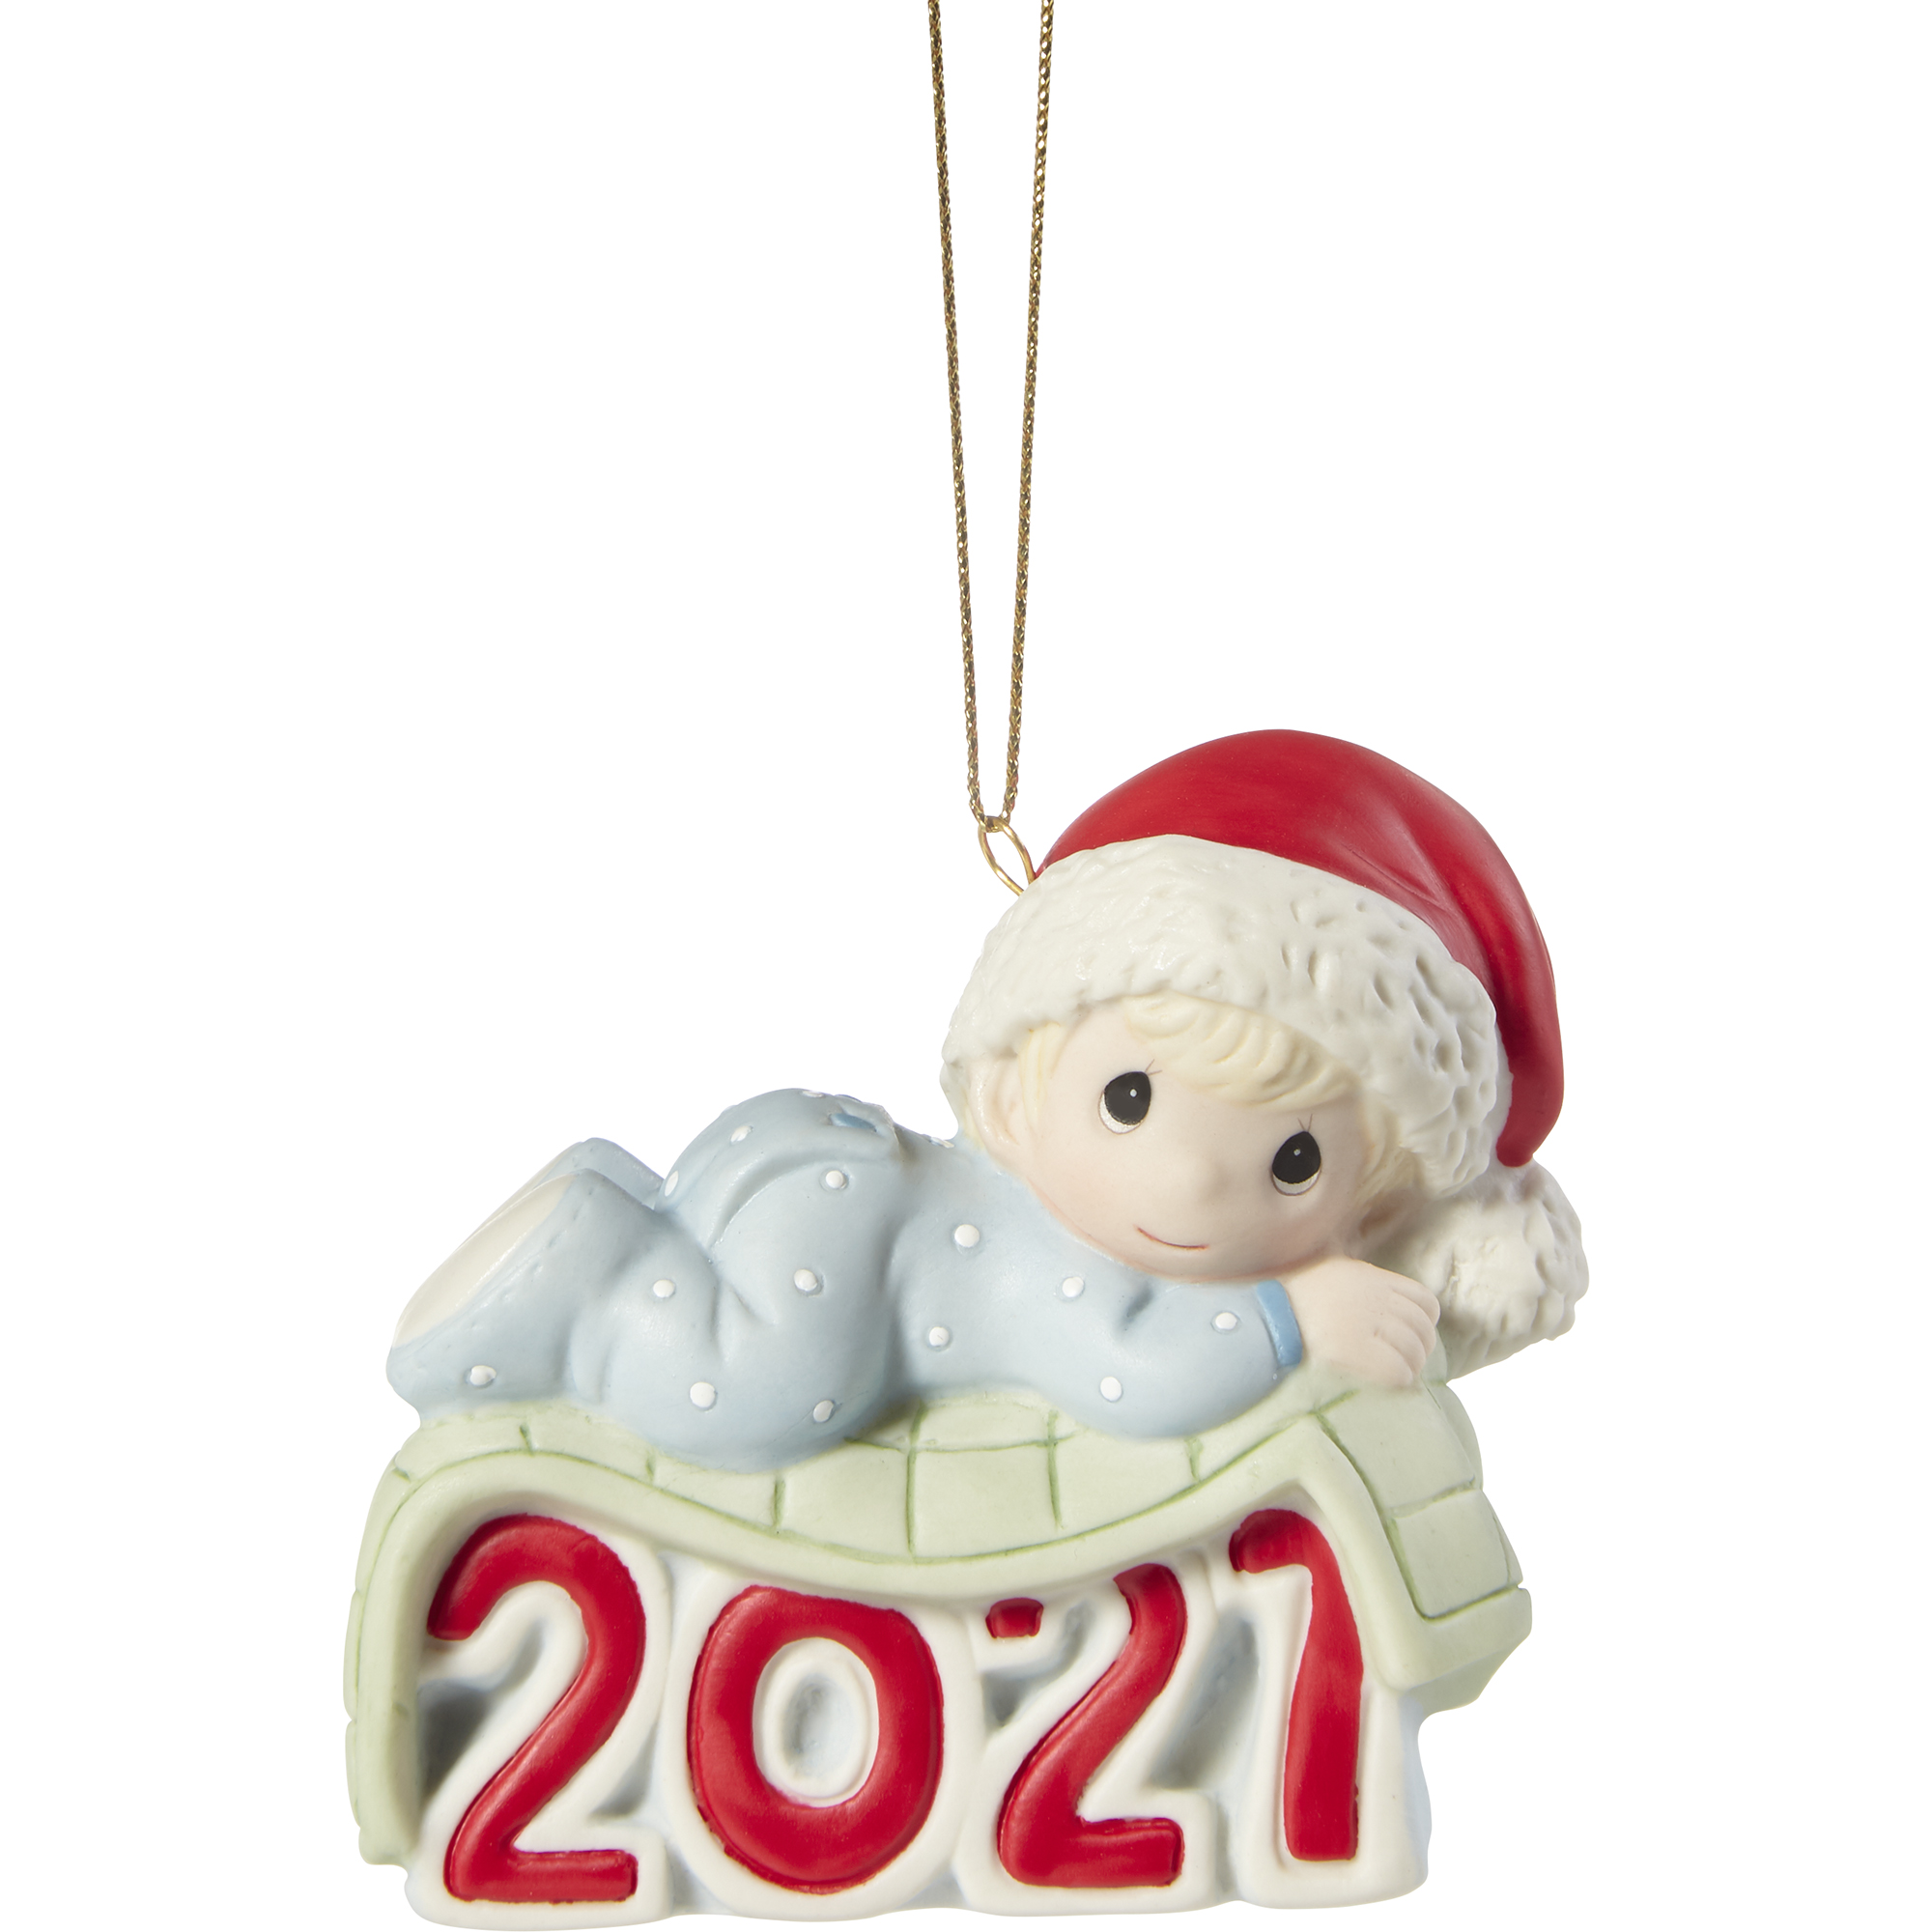 My First Christmas Ornament 2021 2021 Baby S First Christmas Boy Dated Precious Moments Christmas Ornaments Hooked On Ornaments